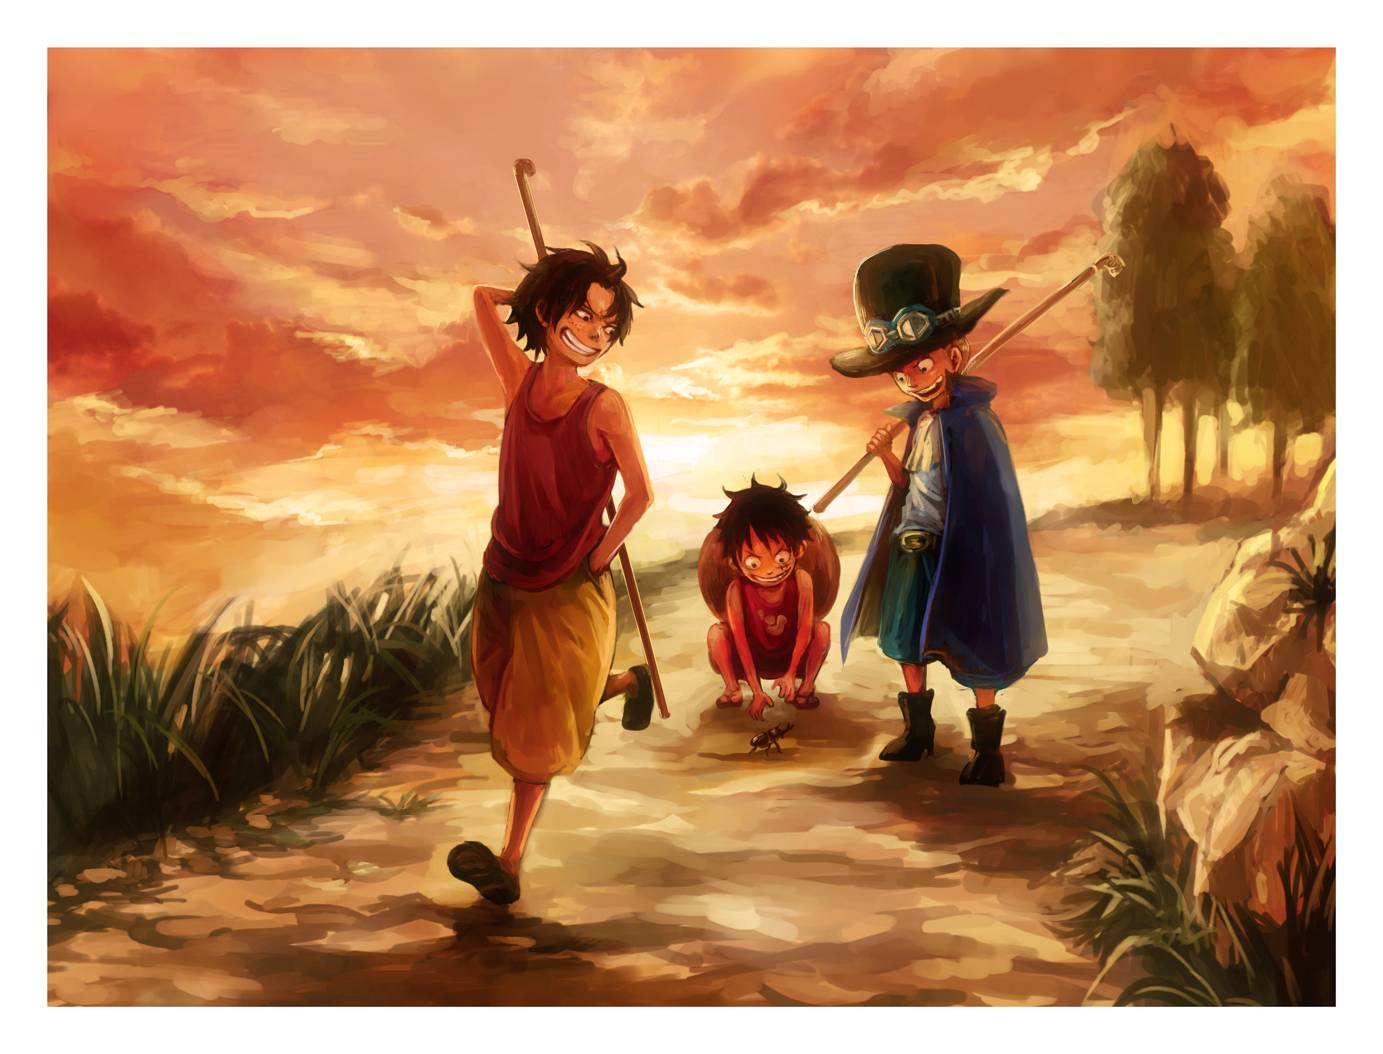 ace and luffy fighting wallpaper - photo #4